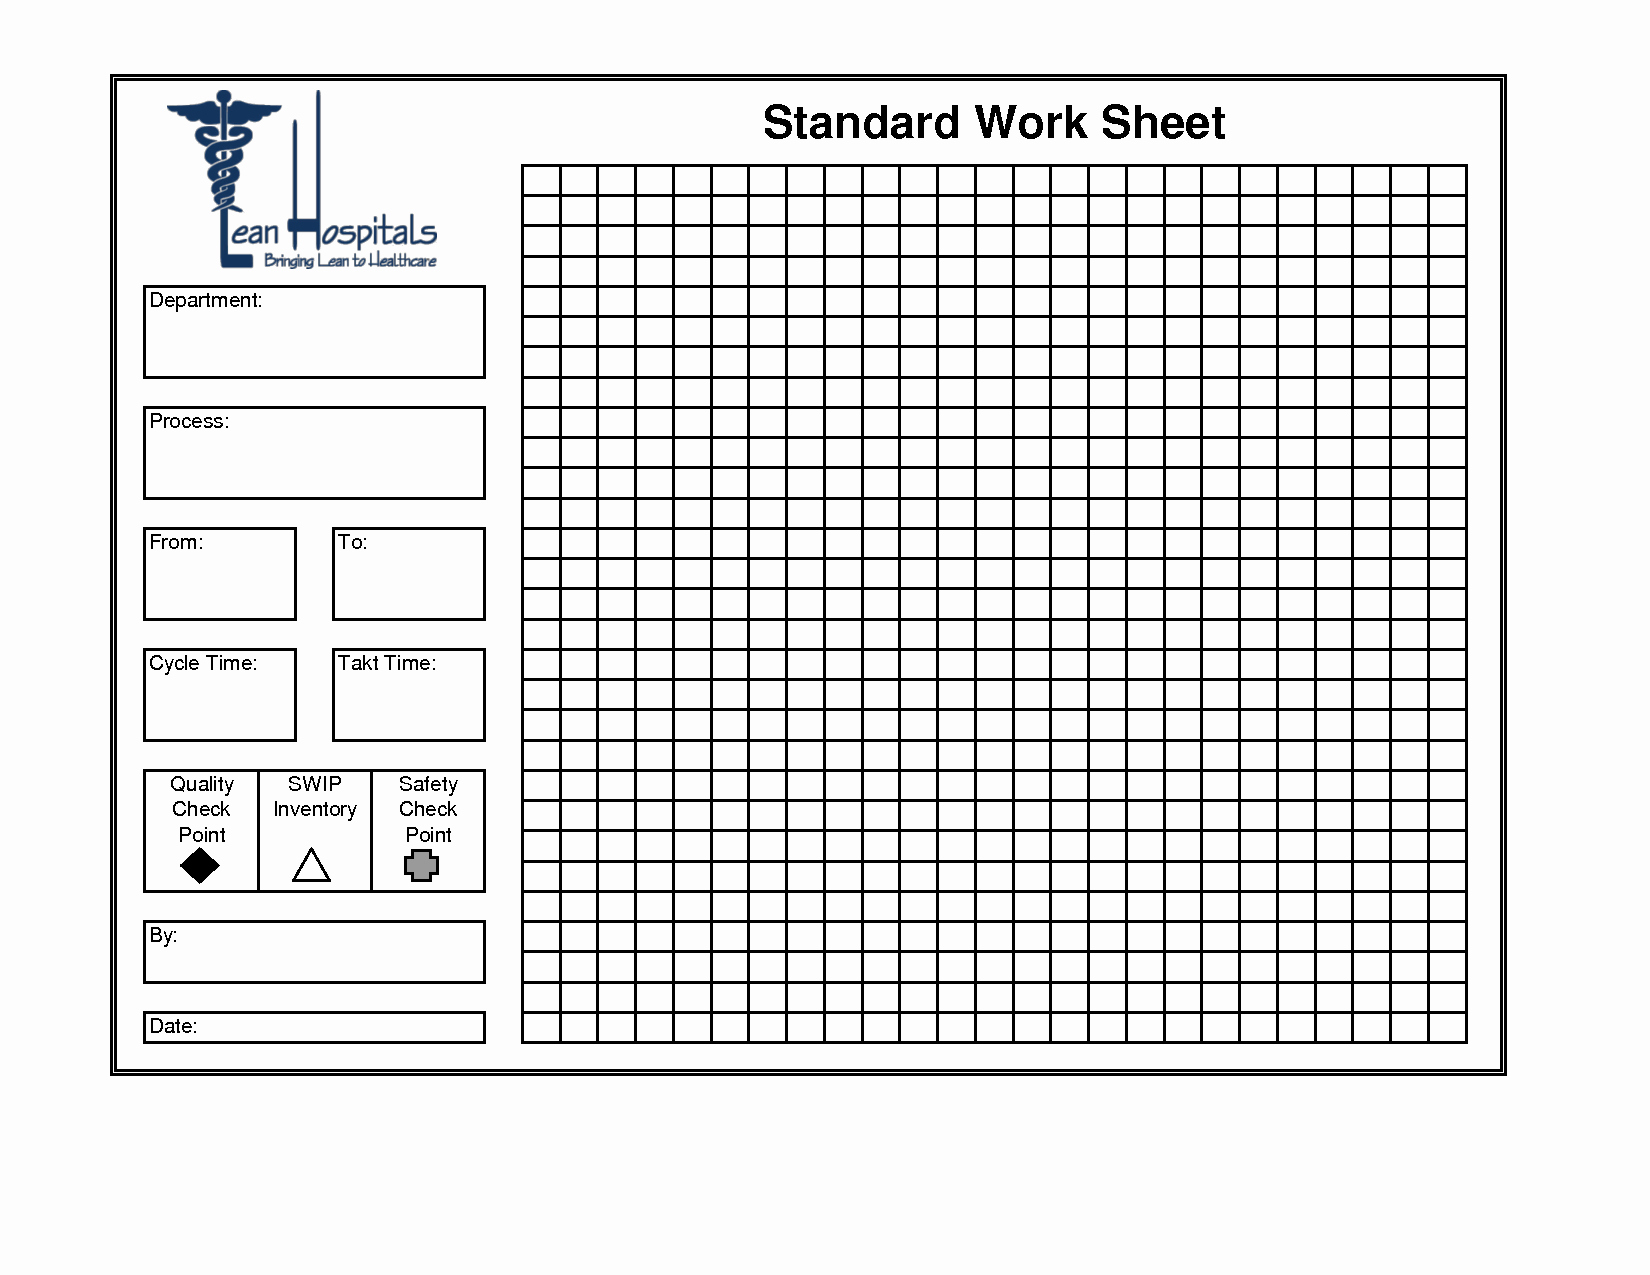 Standardized Work Templates Excel Fresh Best S Of Standard Work Excel Template Standard Work Bination Sheet Template Lean